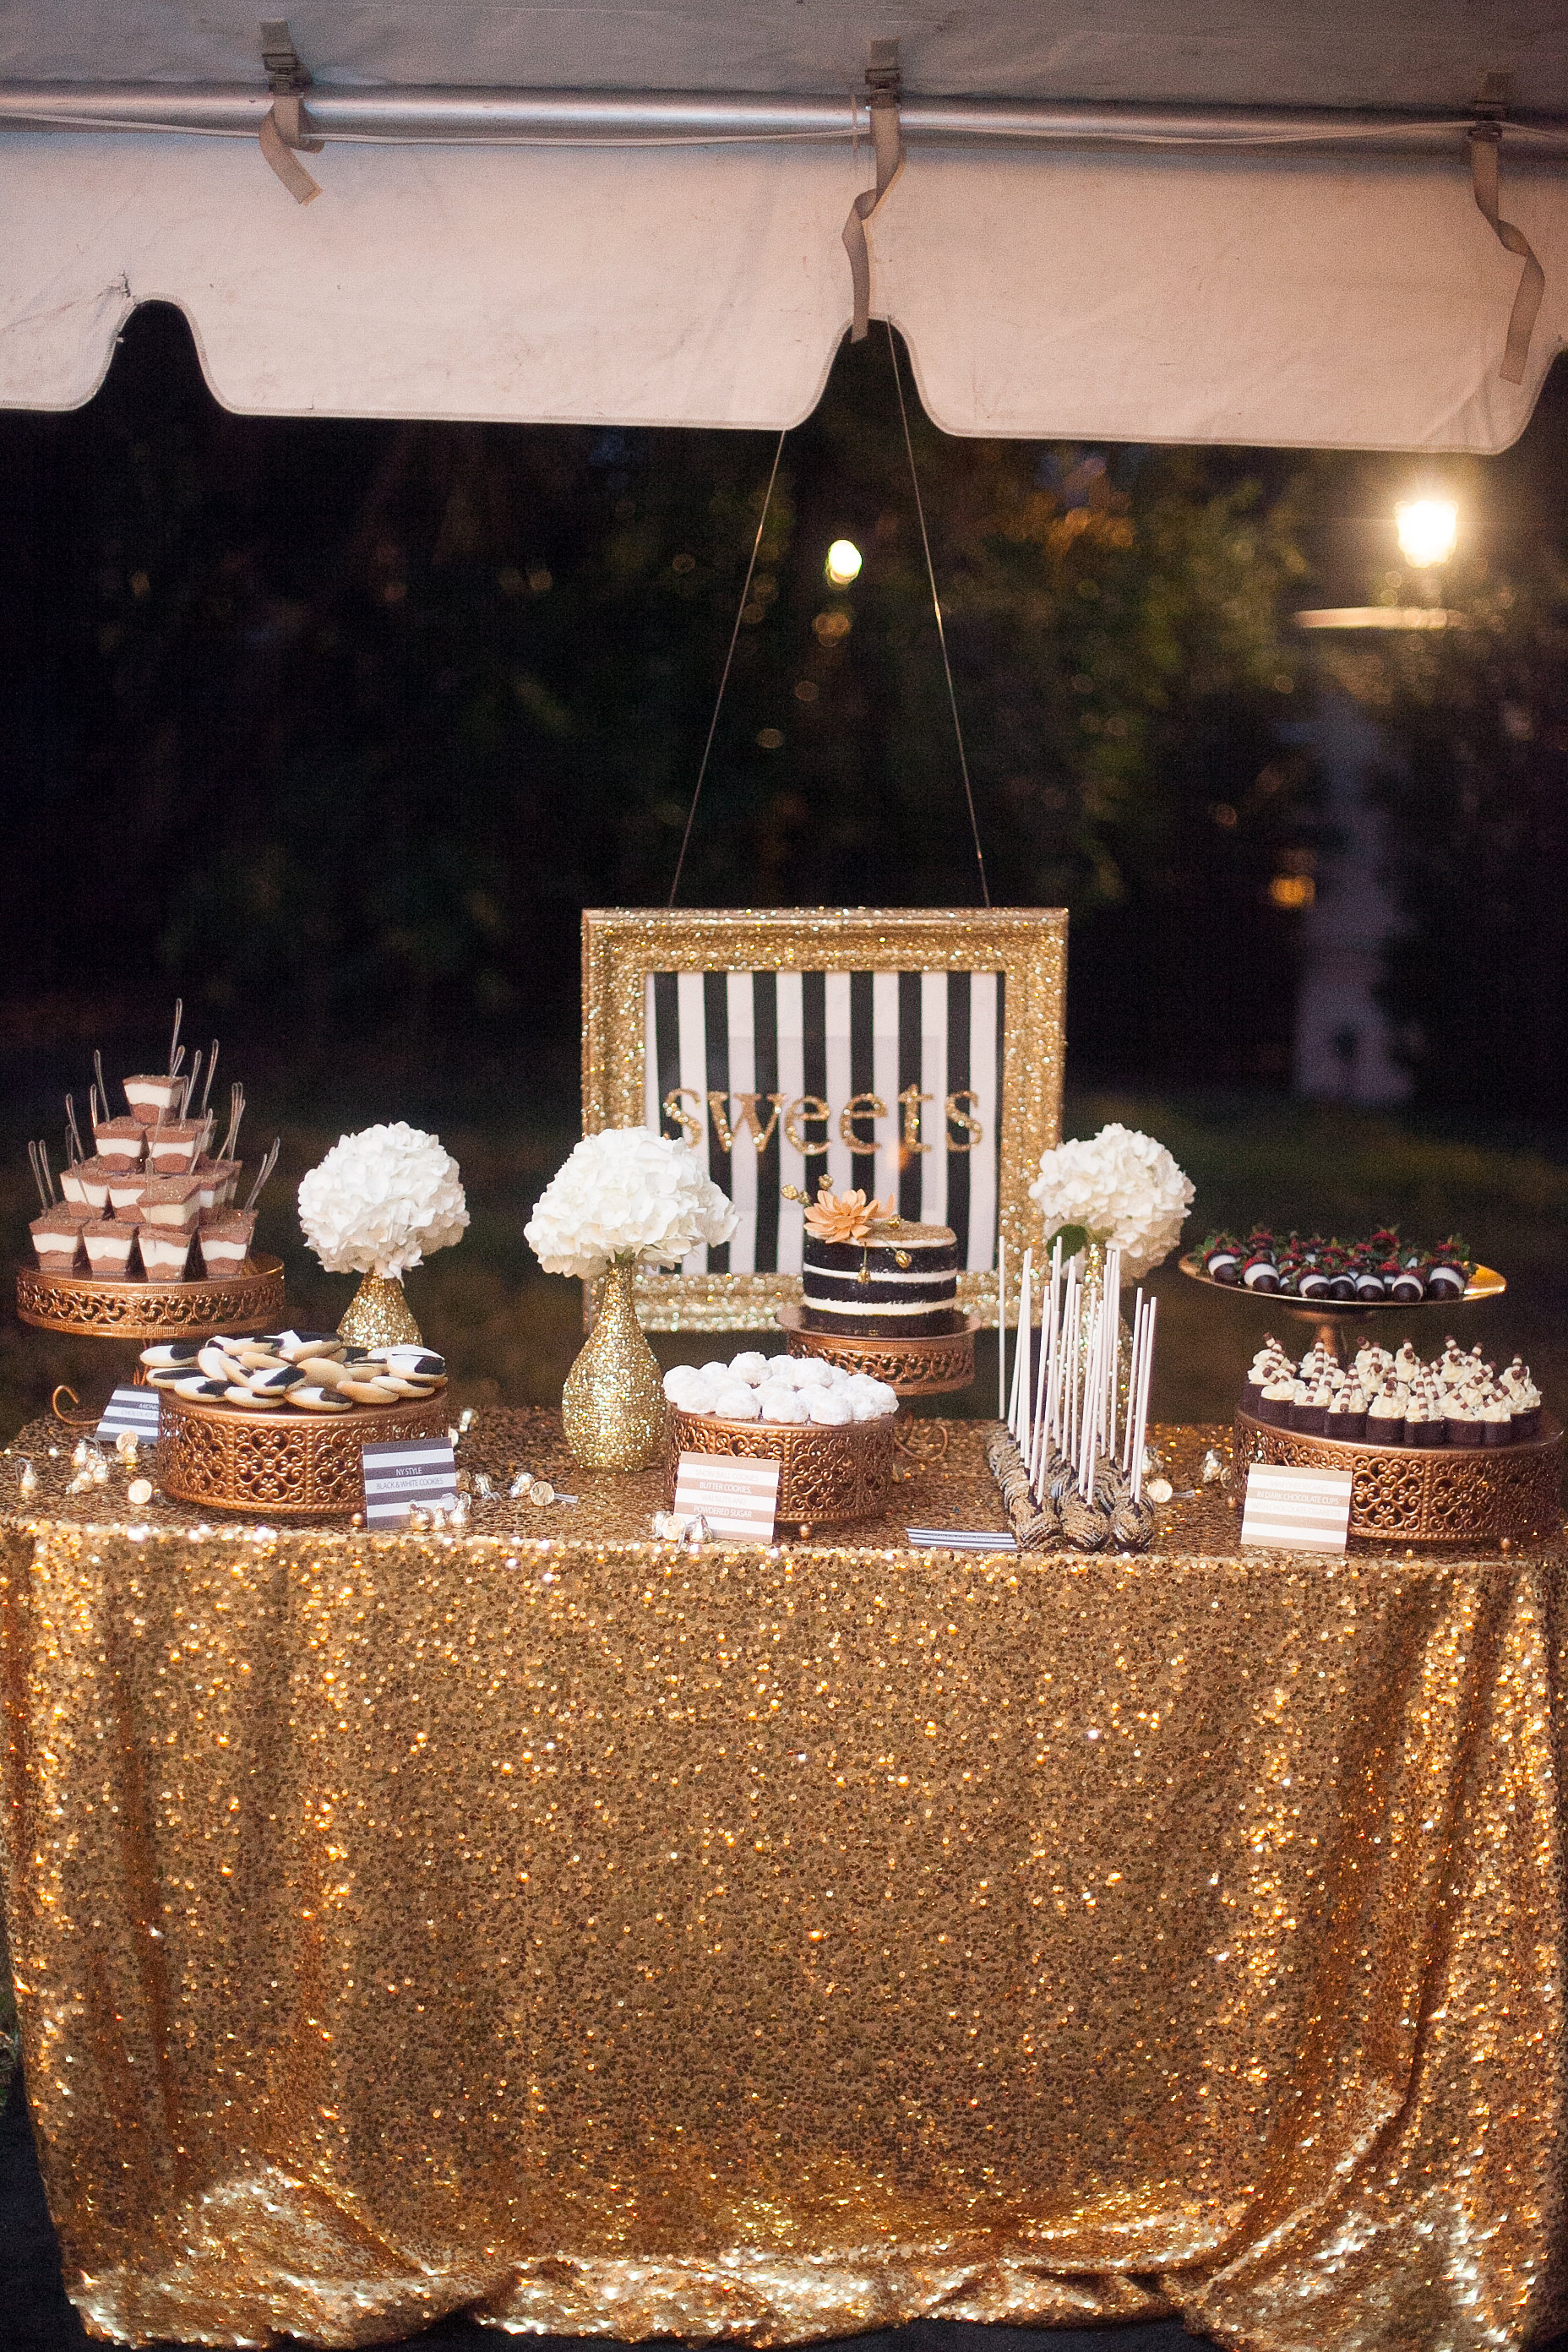 photo ideas for wedding party - Hands on Sweets Wedding Cakes and Desserts